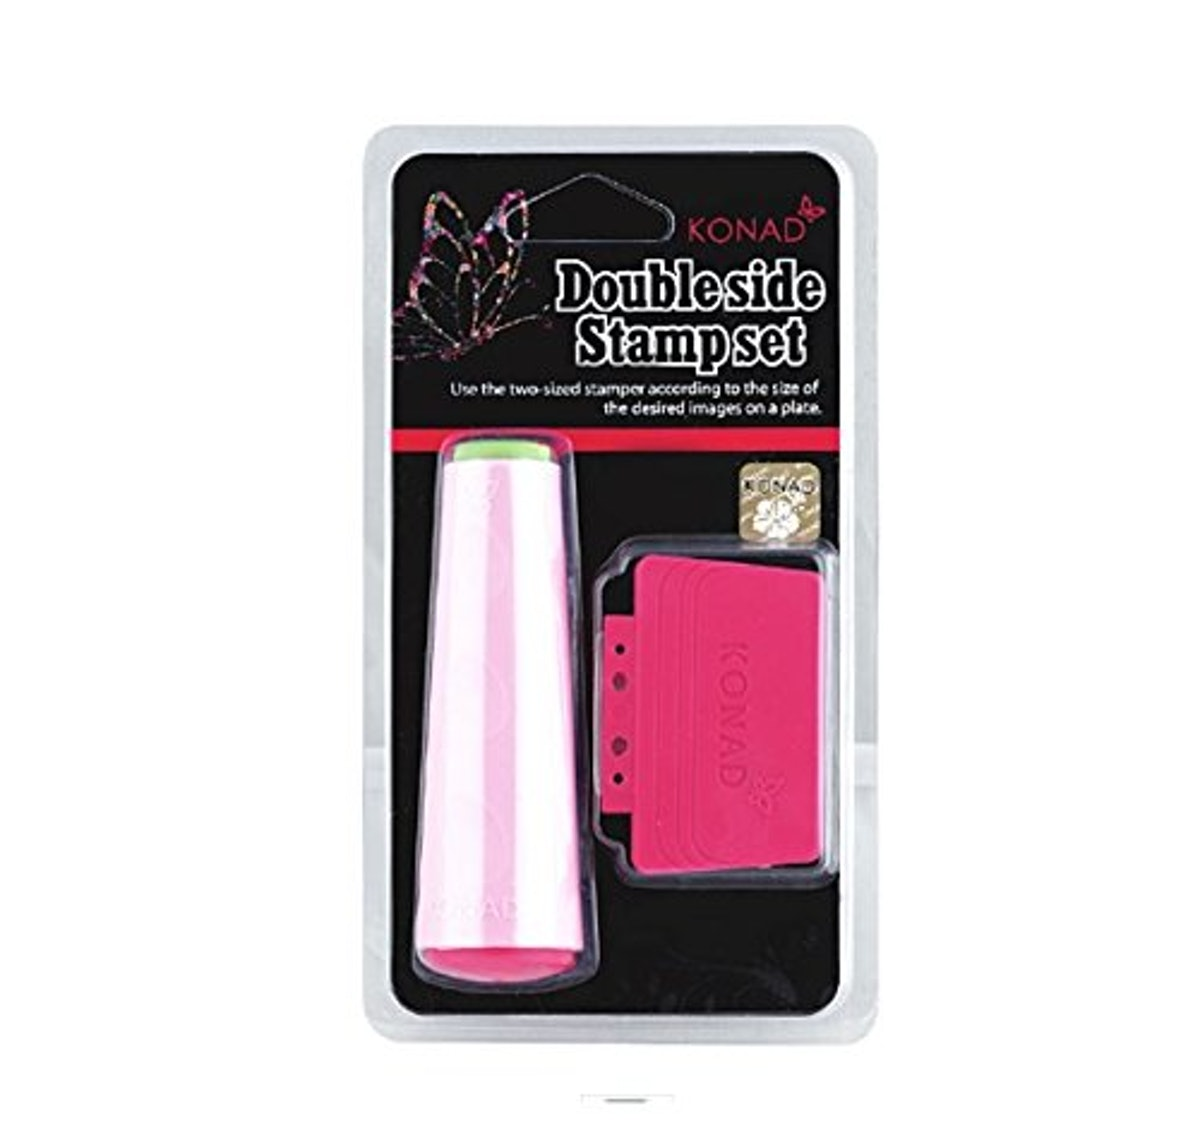 Konad Nail Art Double Ended Stamper & Scraper (2 Pieces)